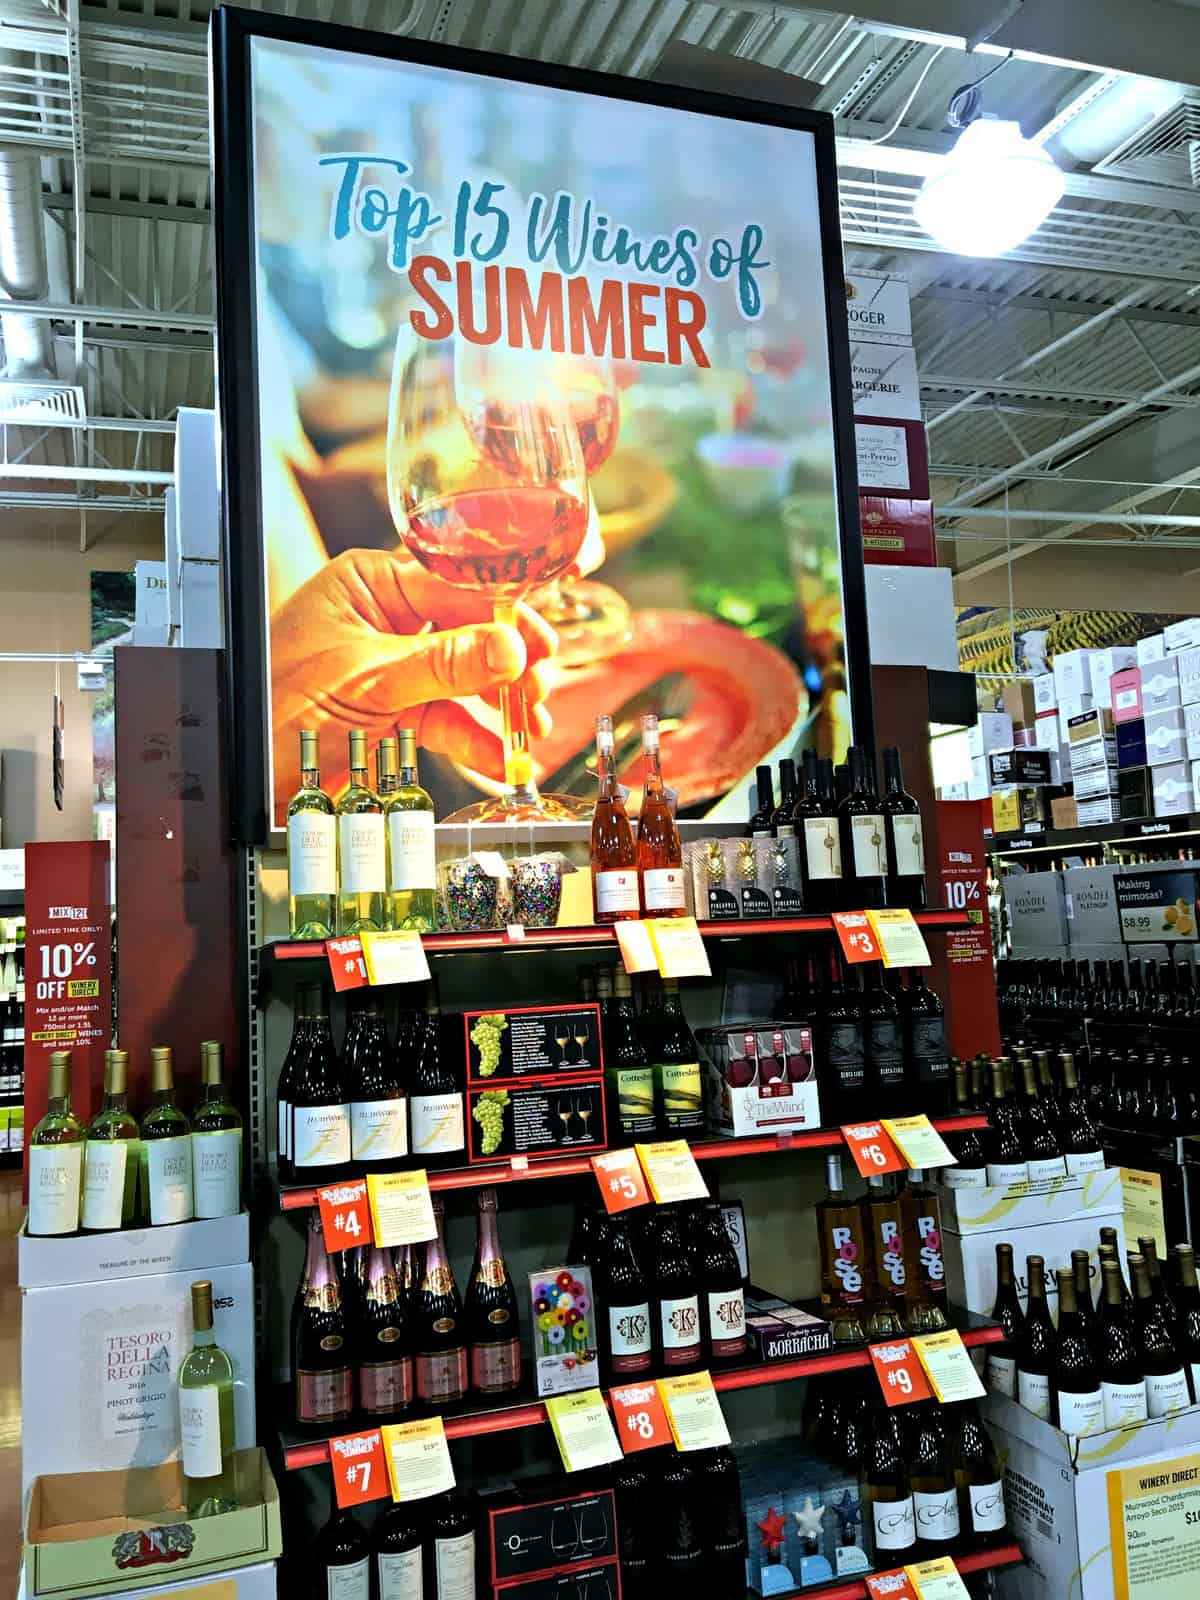 Pick up the best wines of summer at Total Wine